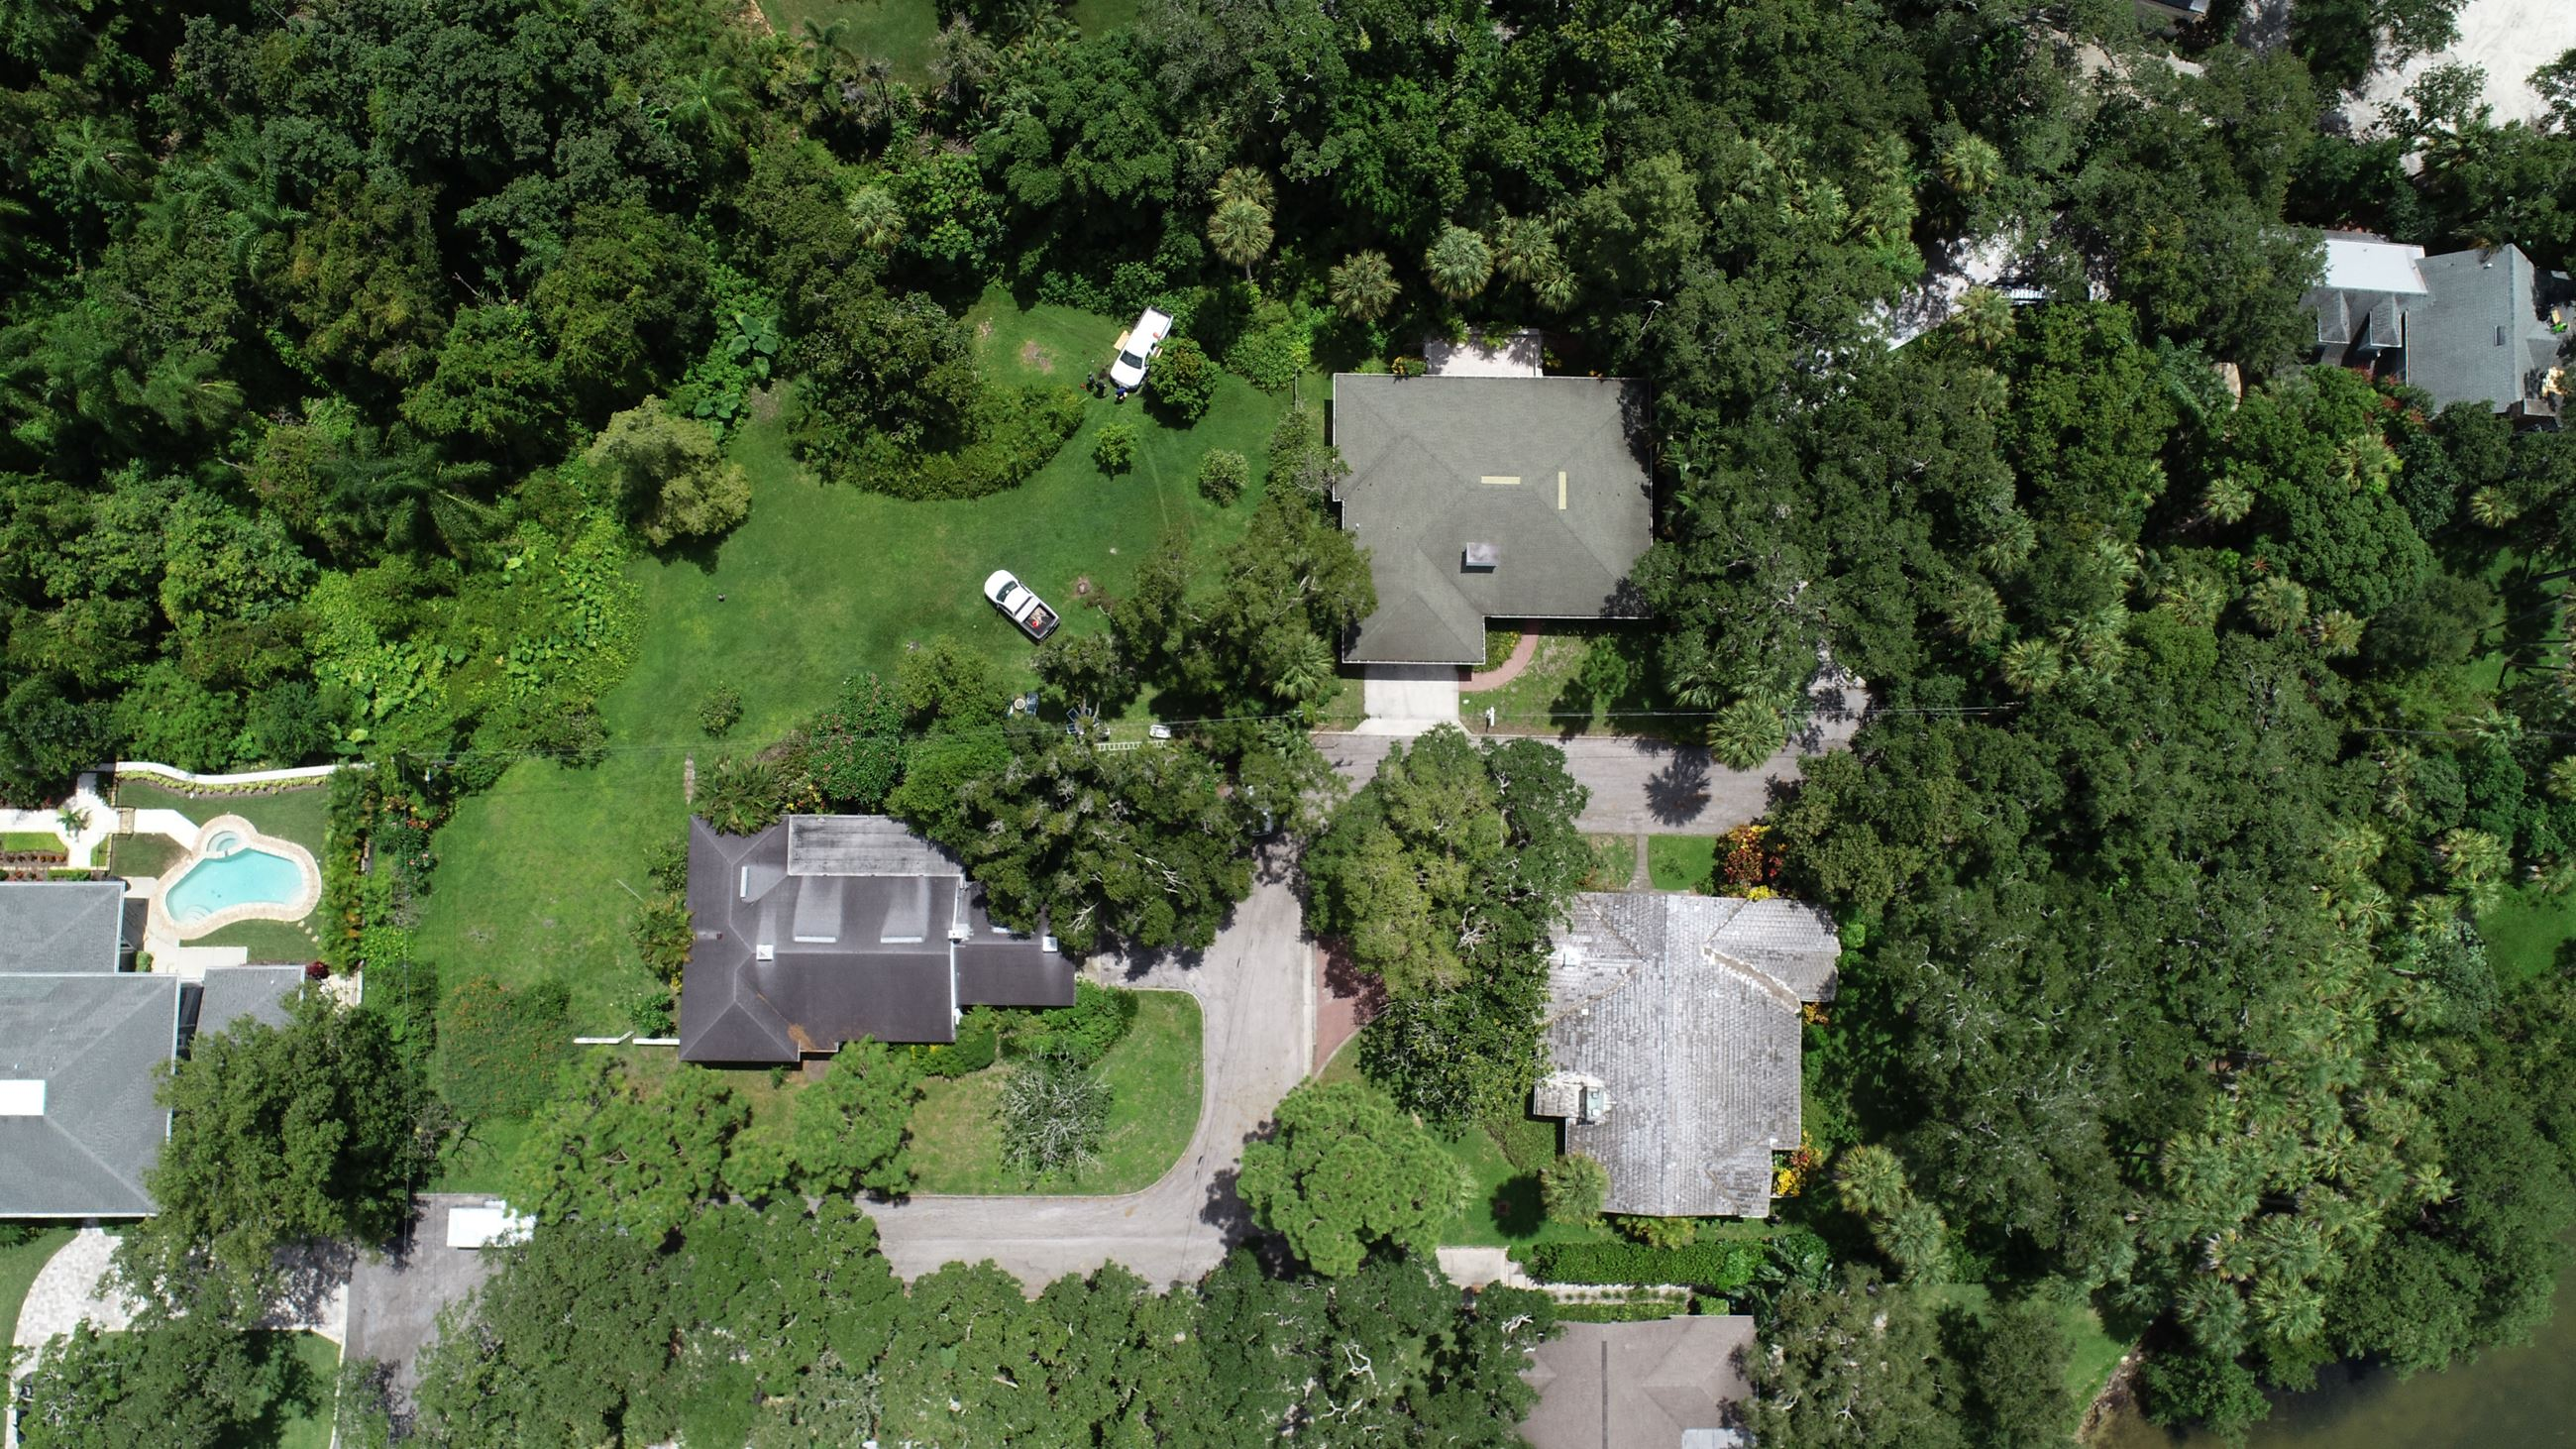 An aerial view of Mr. Ahlf's properties on Baybrook place - three houses and a large amount of gr